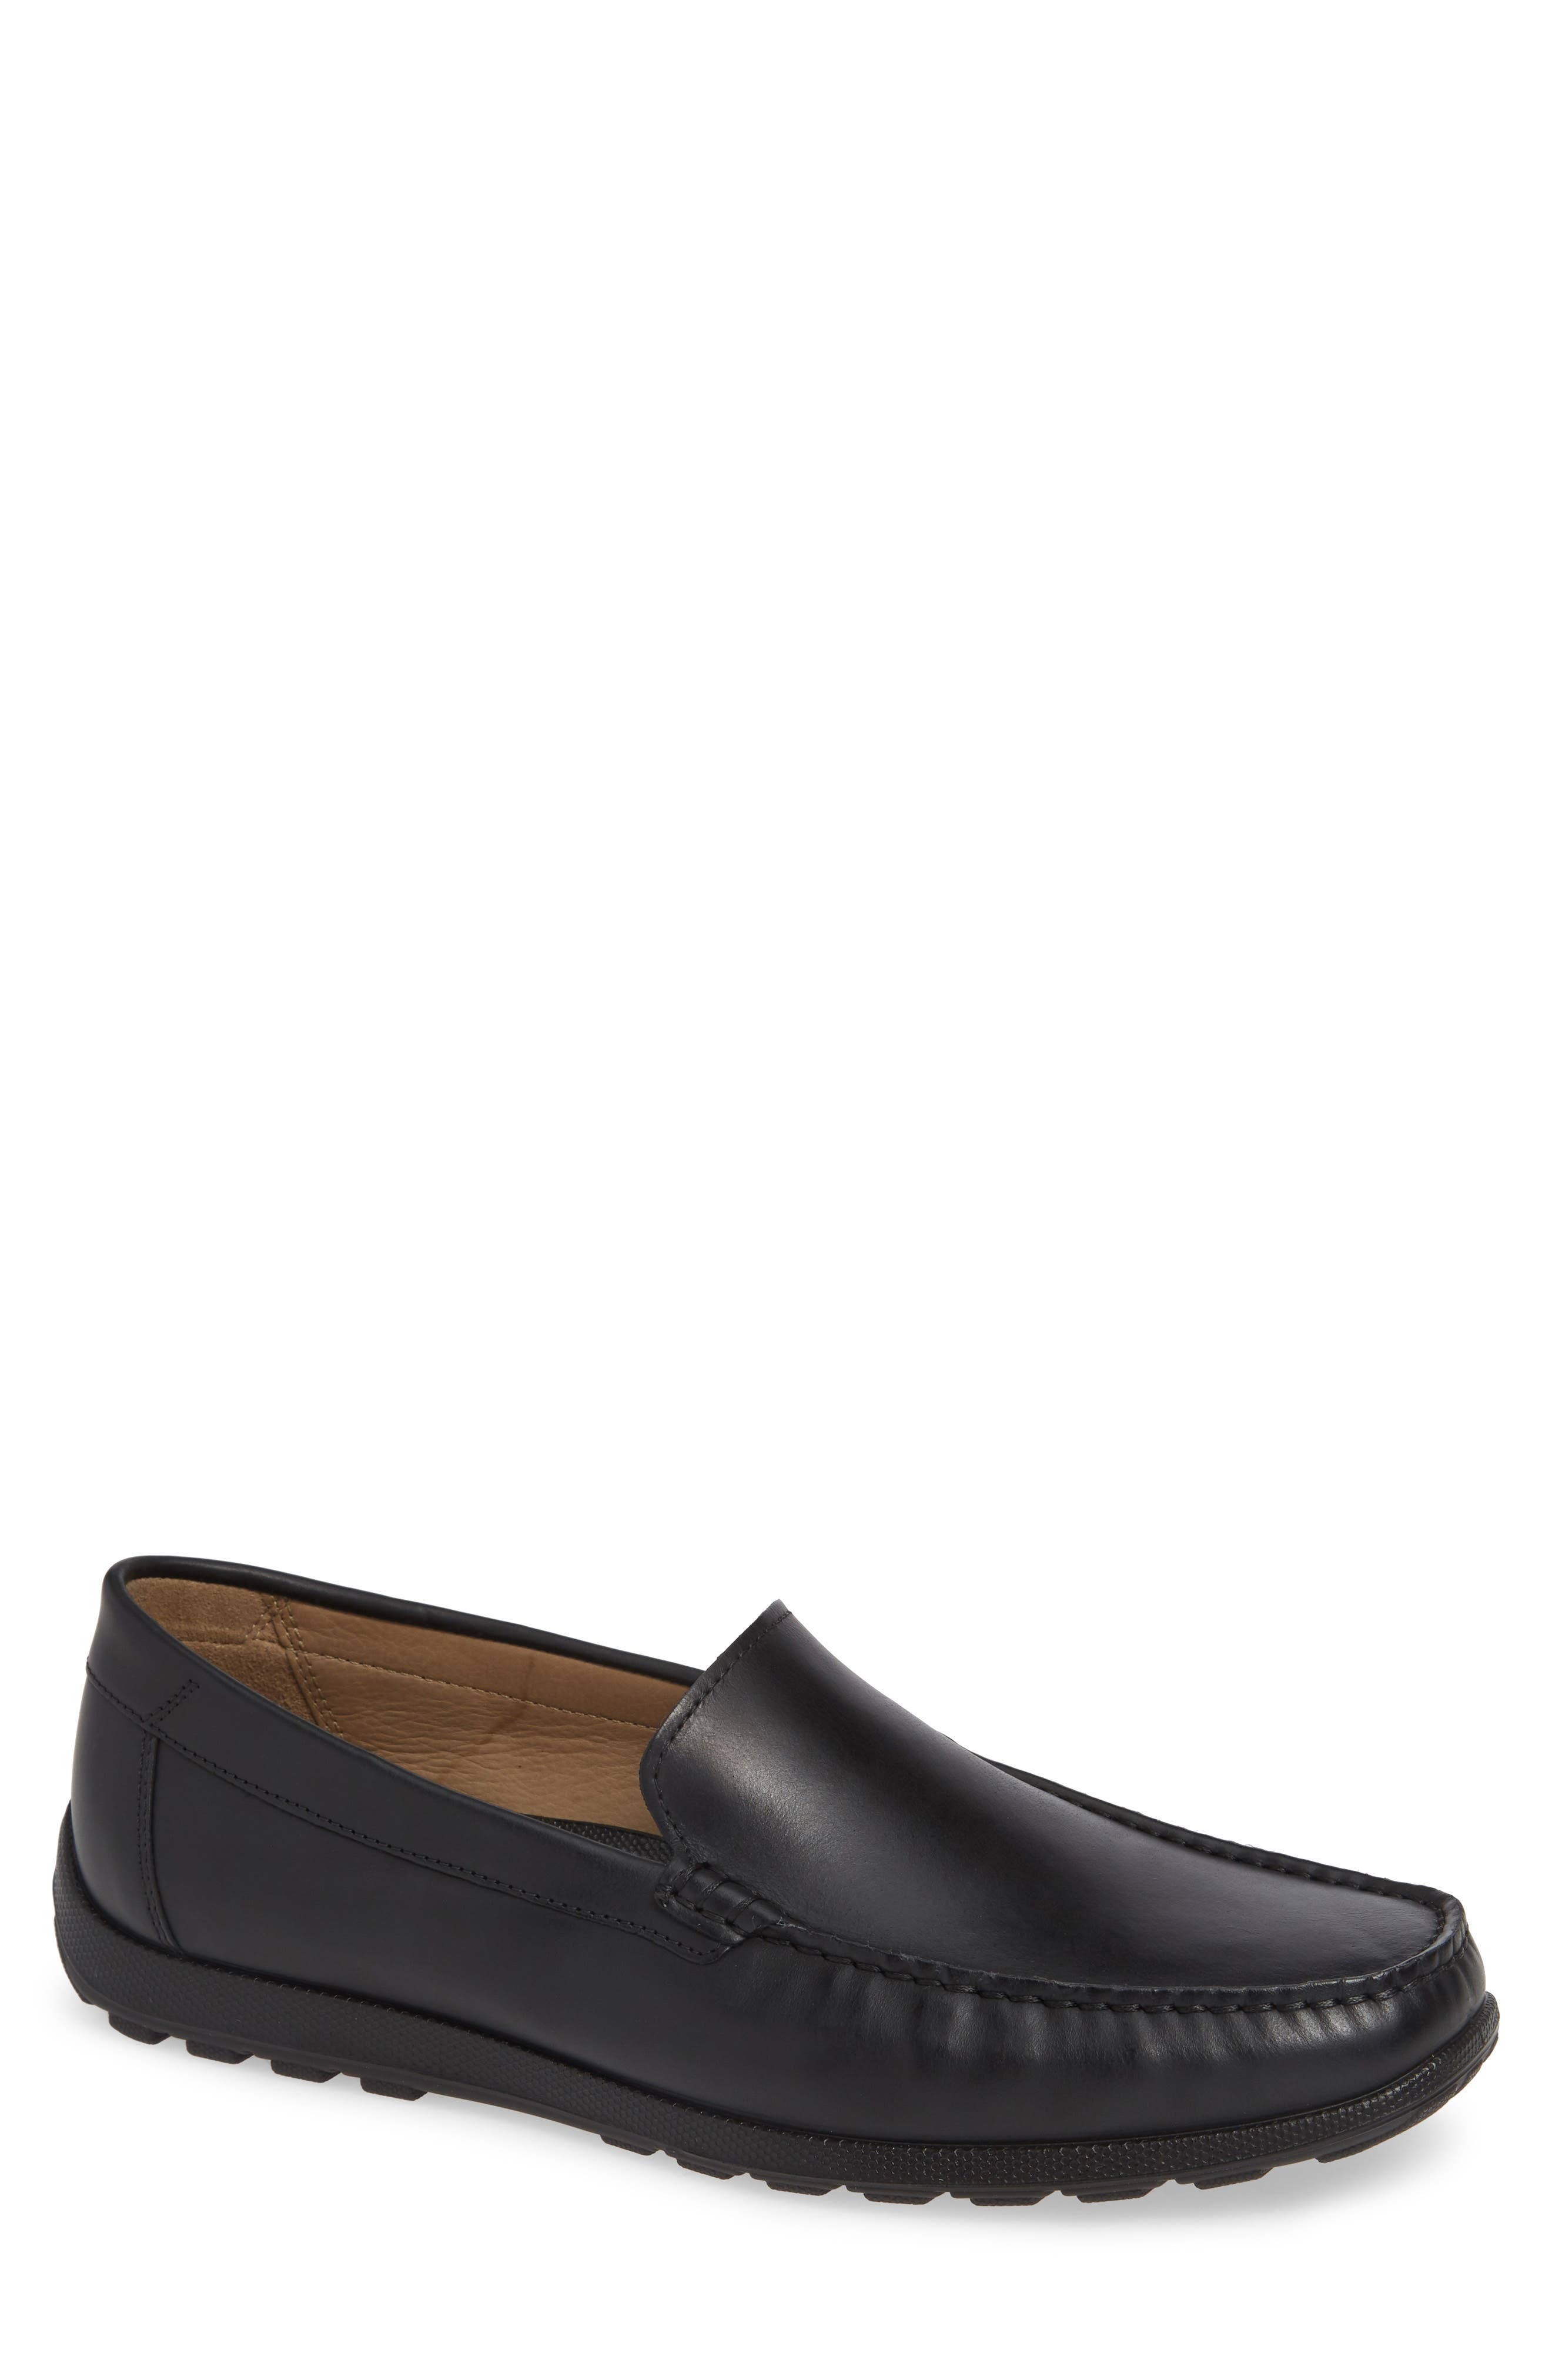 ECCO, Dip Moc Toe Driving Loafer, Main thumbnail 1, color, BLACK LEATHER